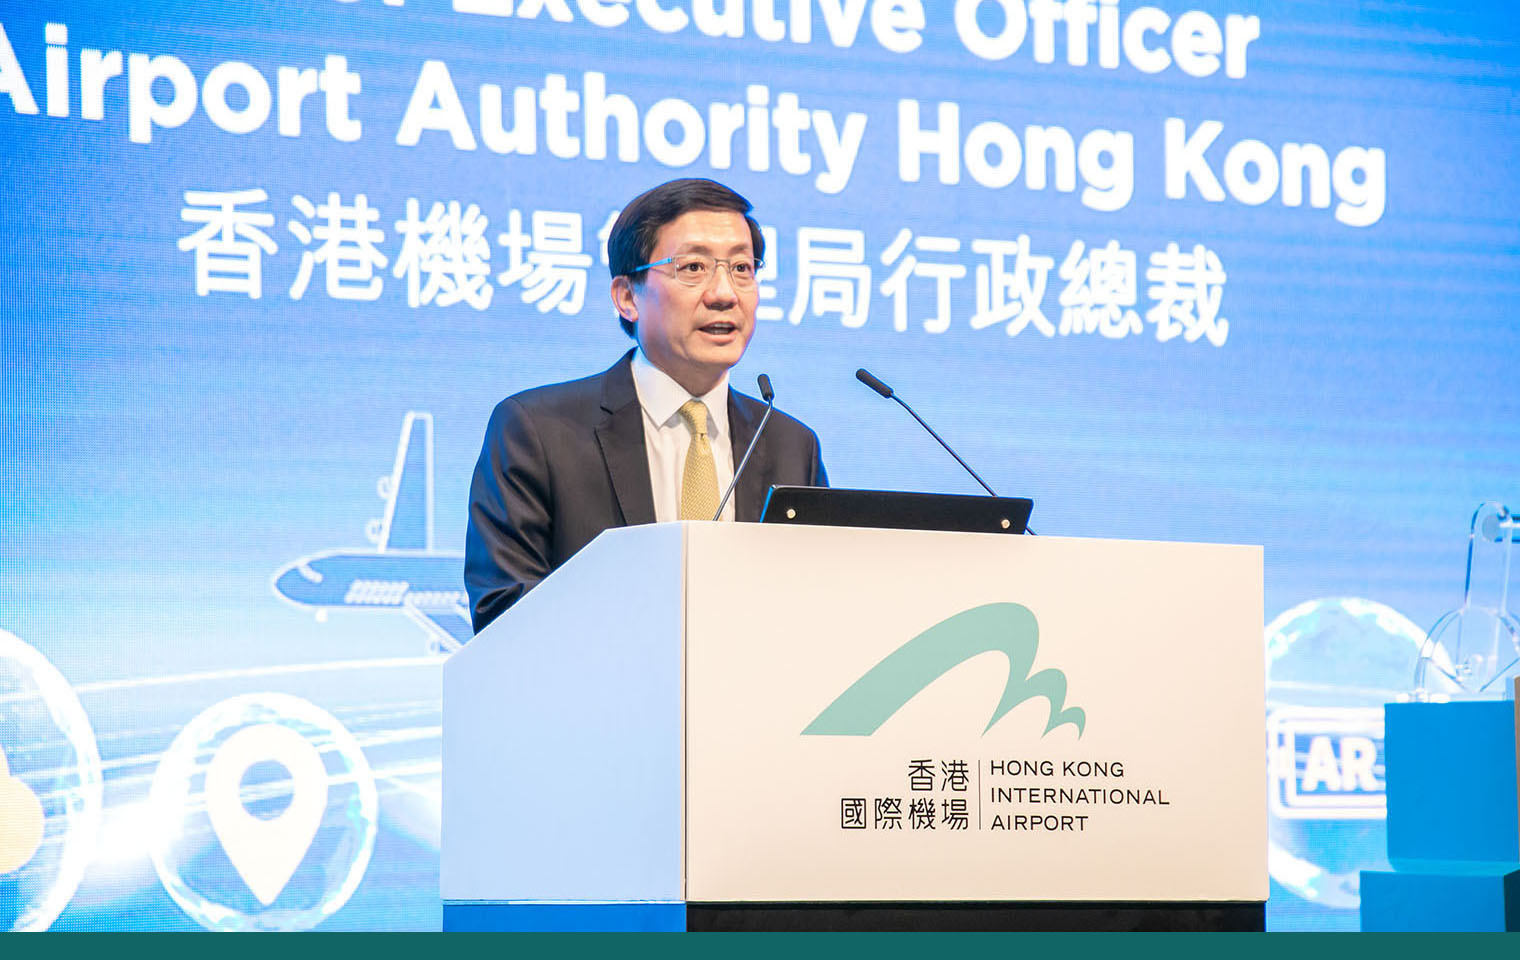 <strong>Mr. Fred Lam</strong><br>Airport Authority Hong Kong